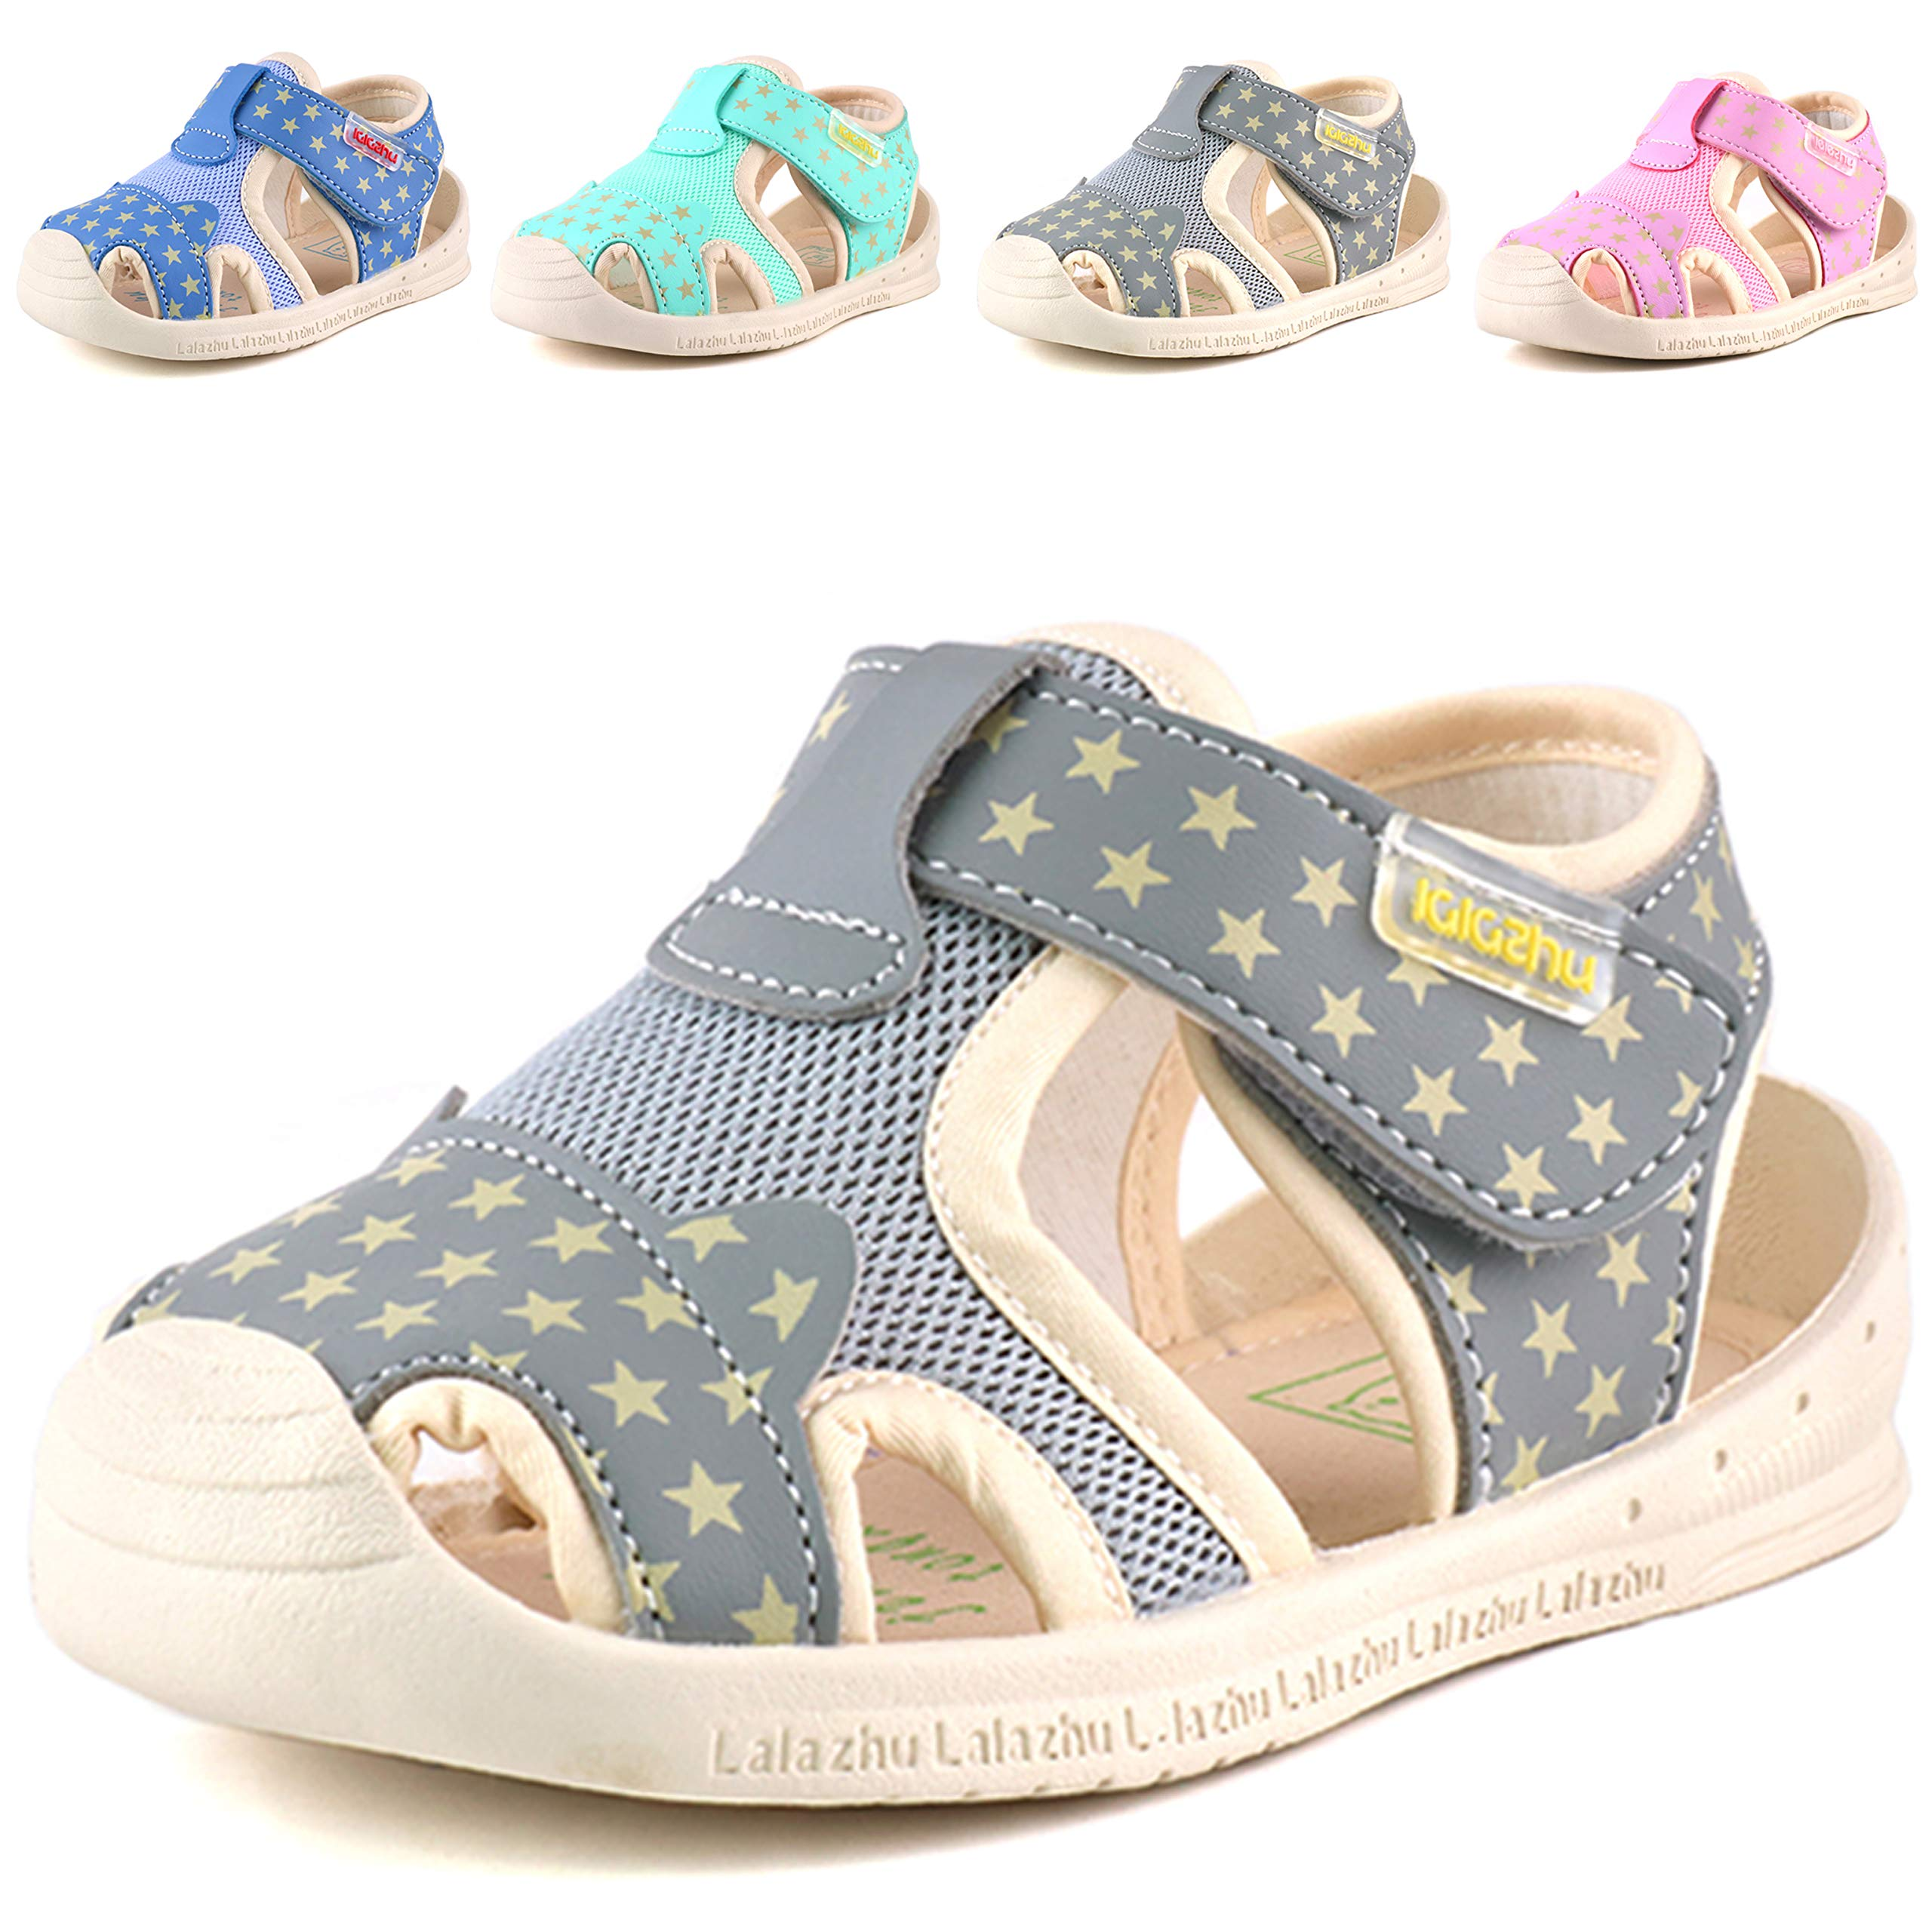 Moceen Kids Soft Microfiber Leather Sandals Light-Up Toddler Boys/Girls Closed Toe Pre School Shoes,Grey,8102 115